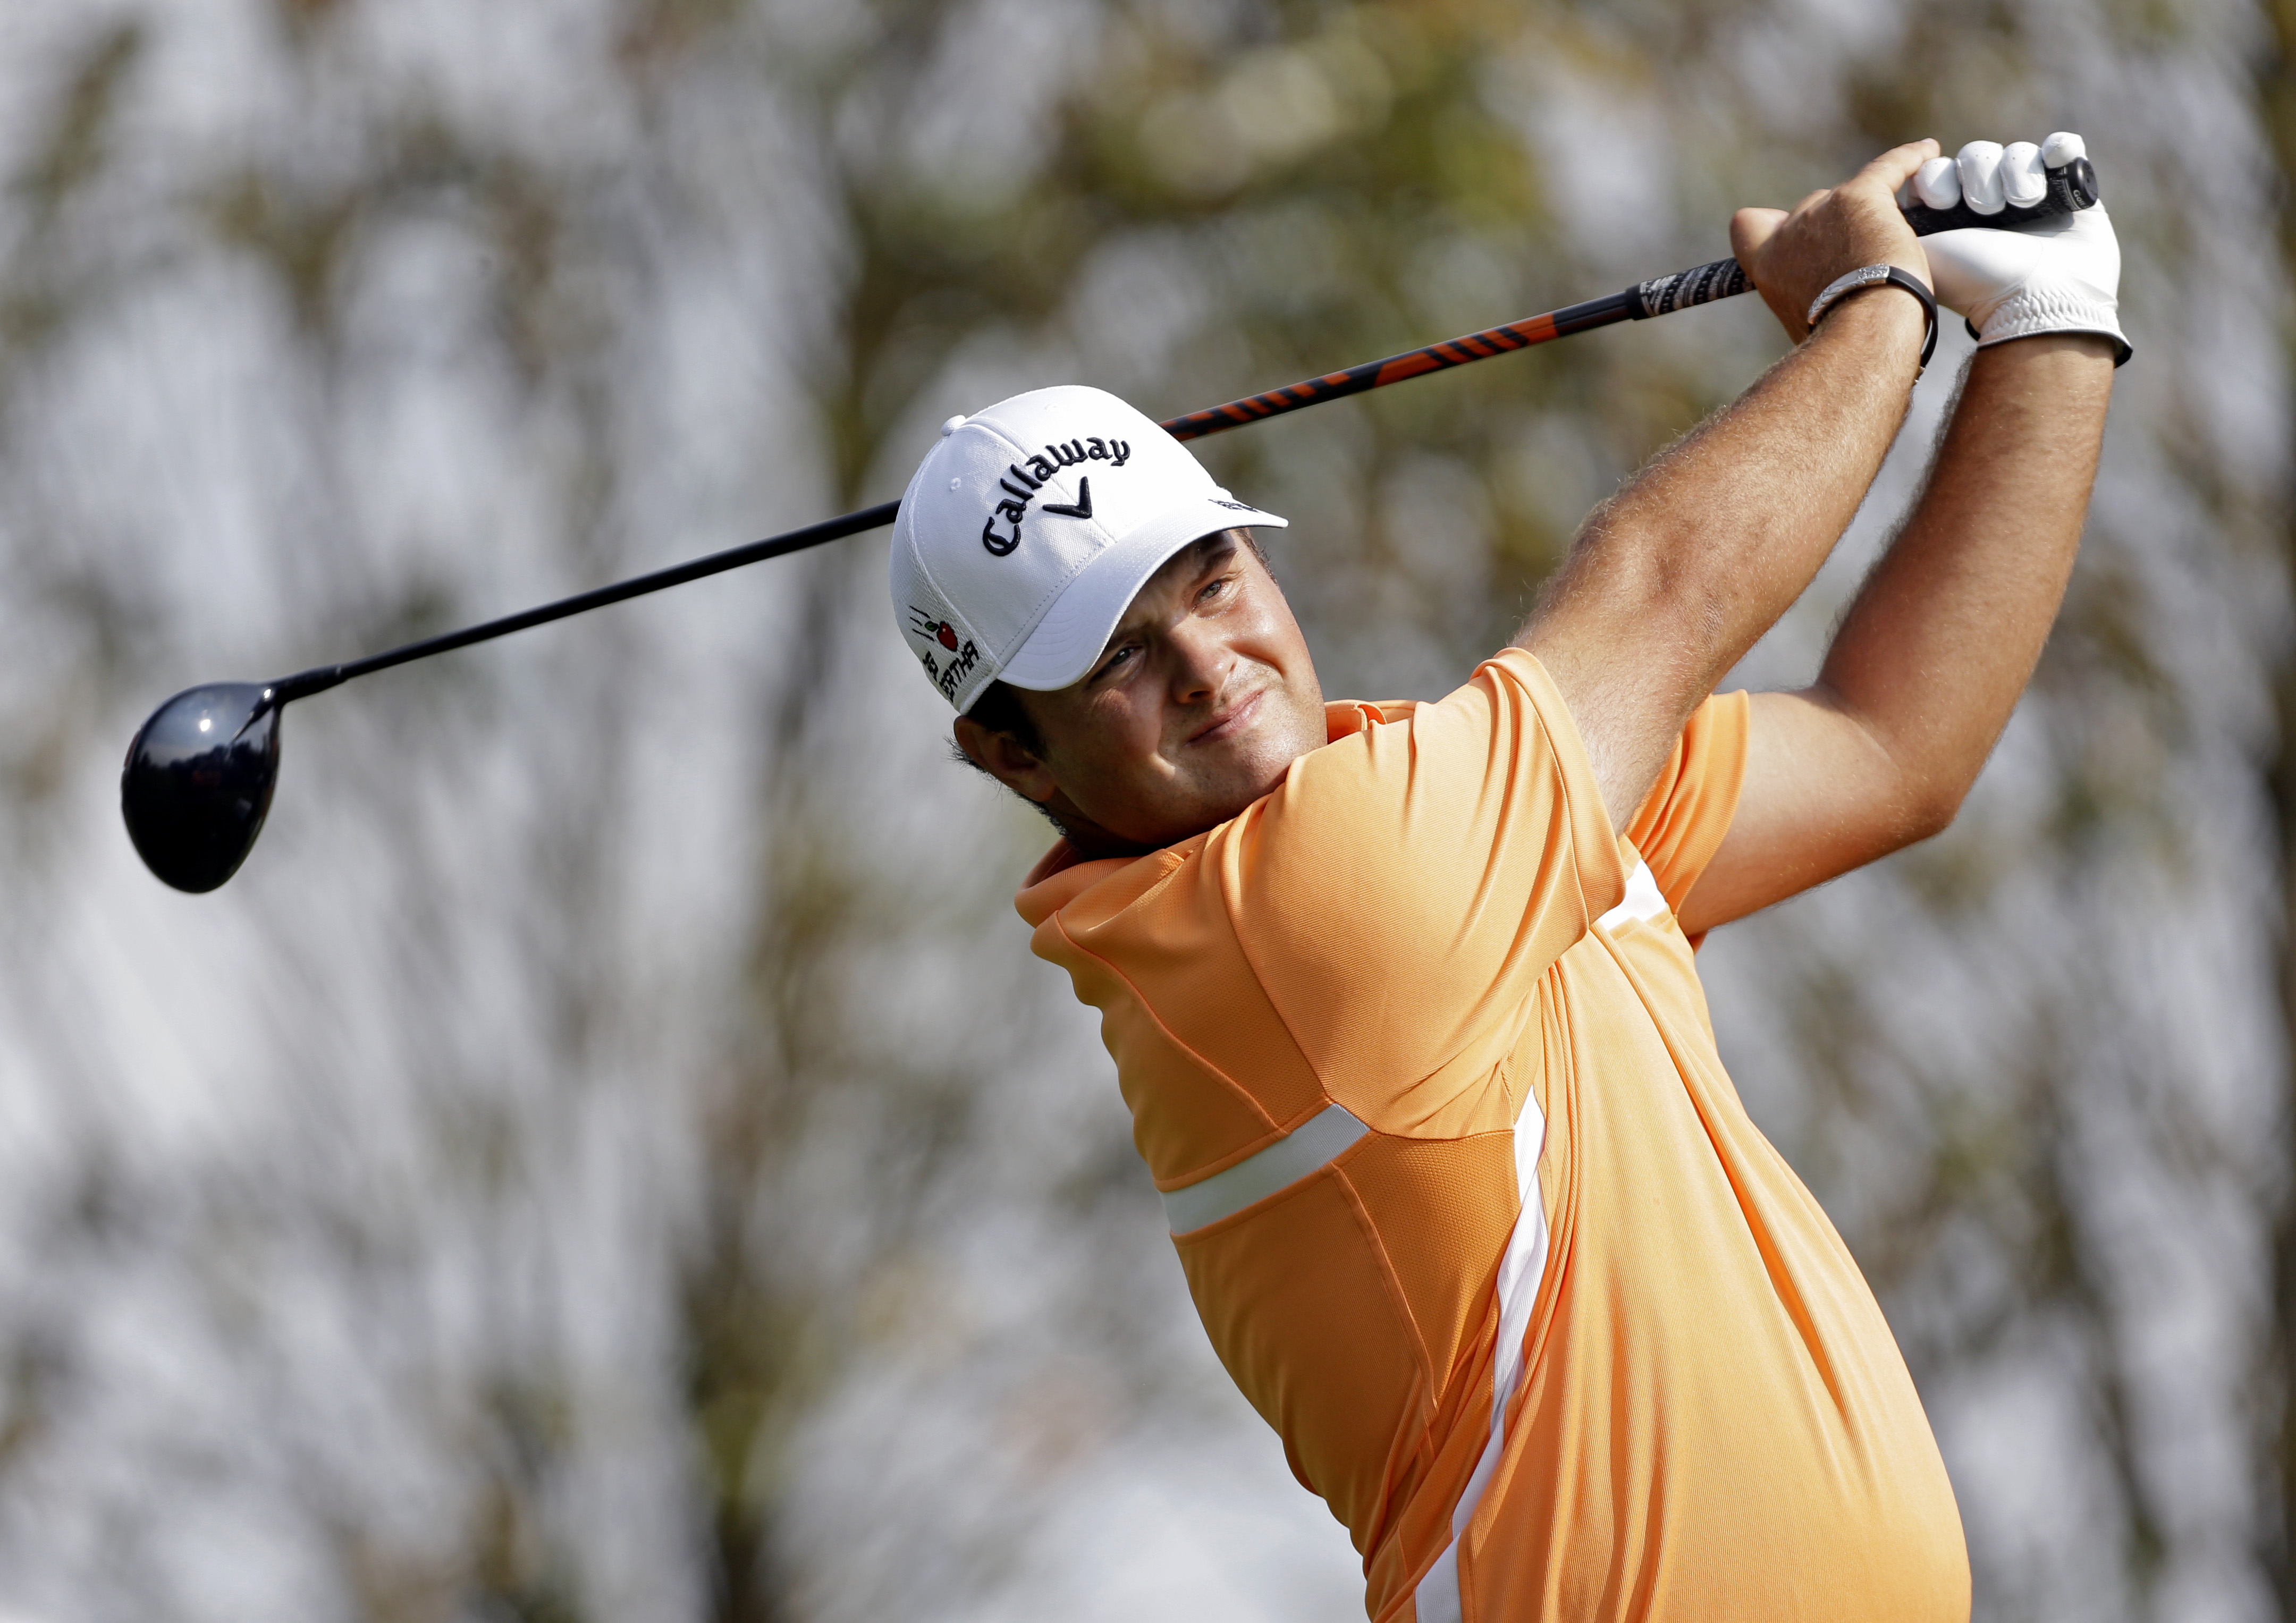 Patrick Reed watches his tee shot on the 16th hole during the second round of the Wells Fargo Championship golf tournament at Quail Hollow Club in Charlotte, N.C., Friday, May 15, 2015. (AP Photo/Bob Leverone)